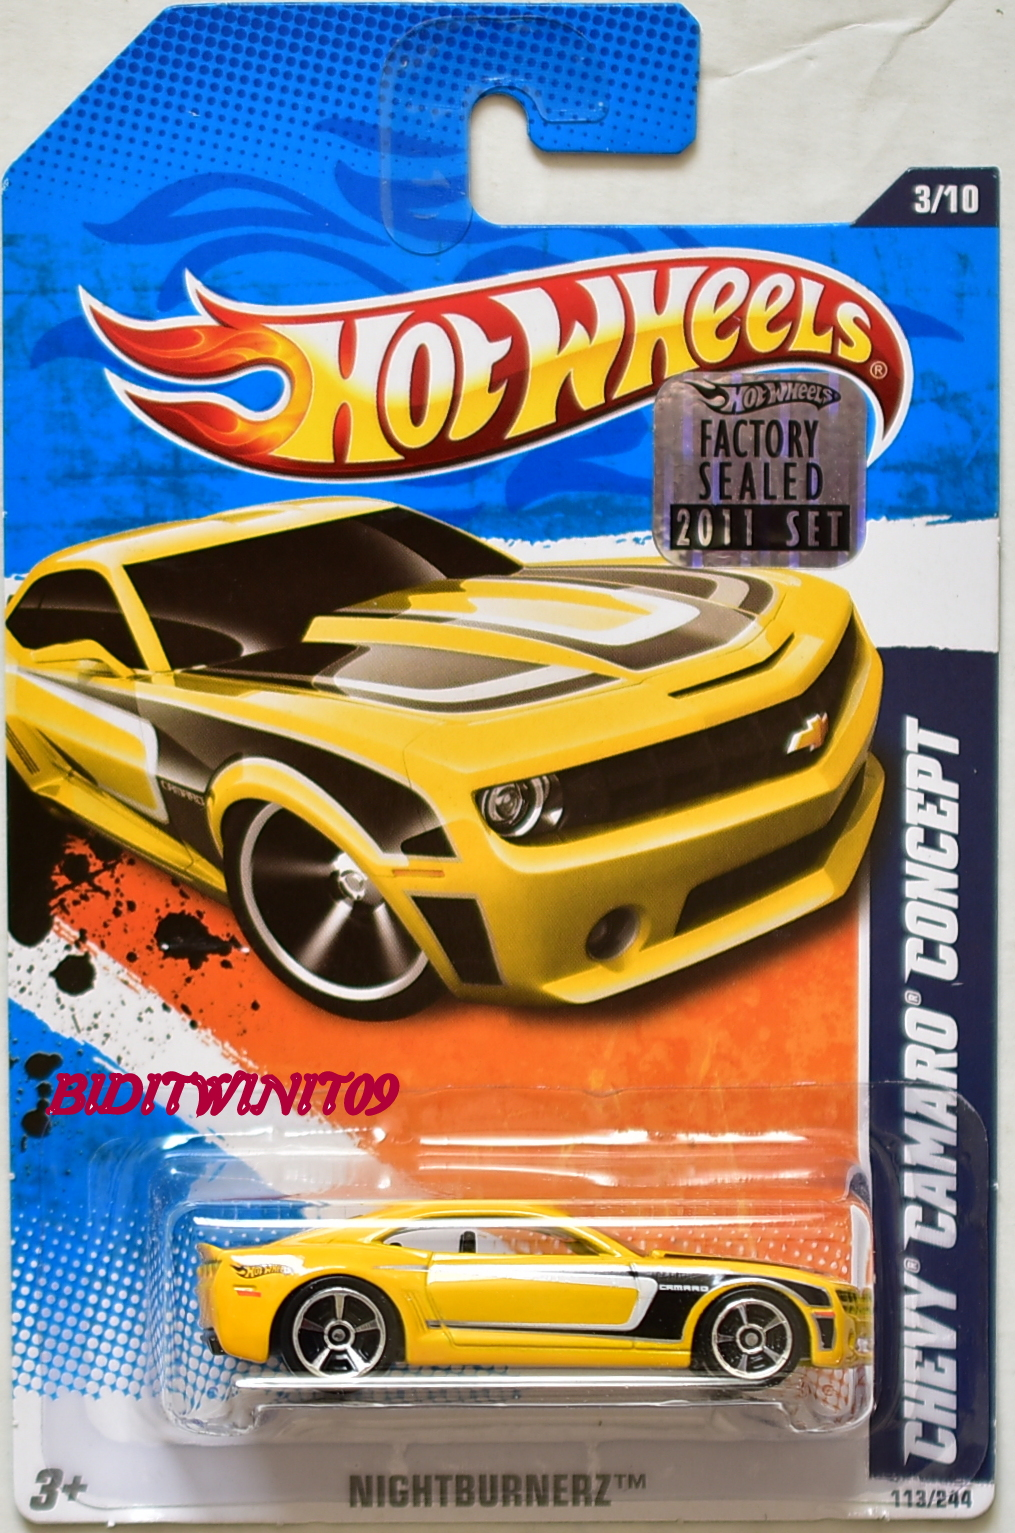 HOT WHEELS 2011 NIGHTBURNERZ CHEVY CAMARO CONCEPT YELLOW FACTORY SEALED E+